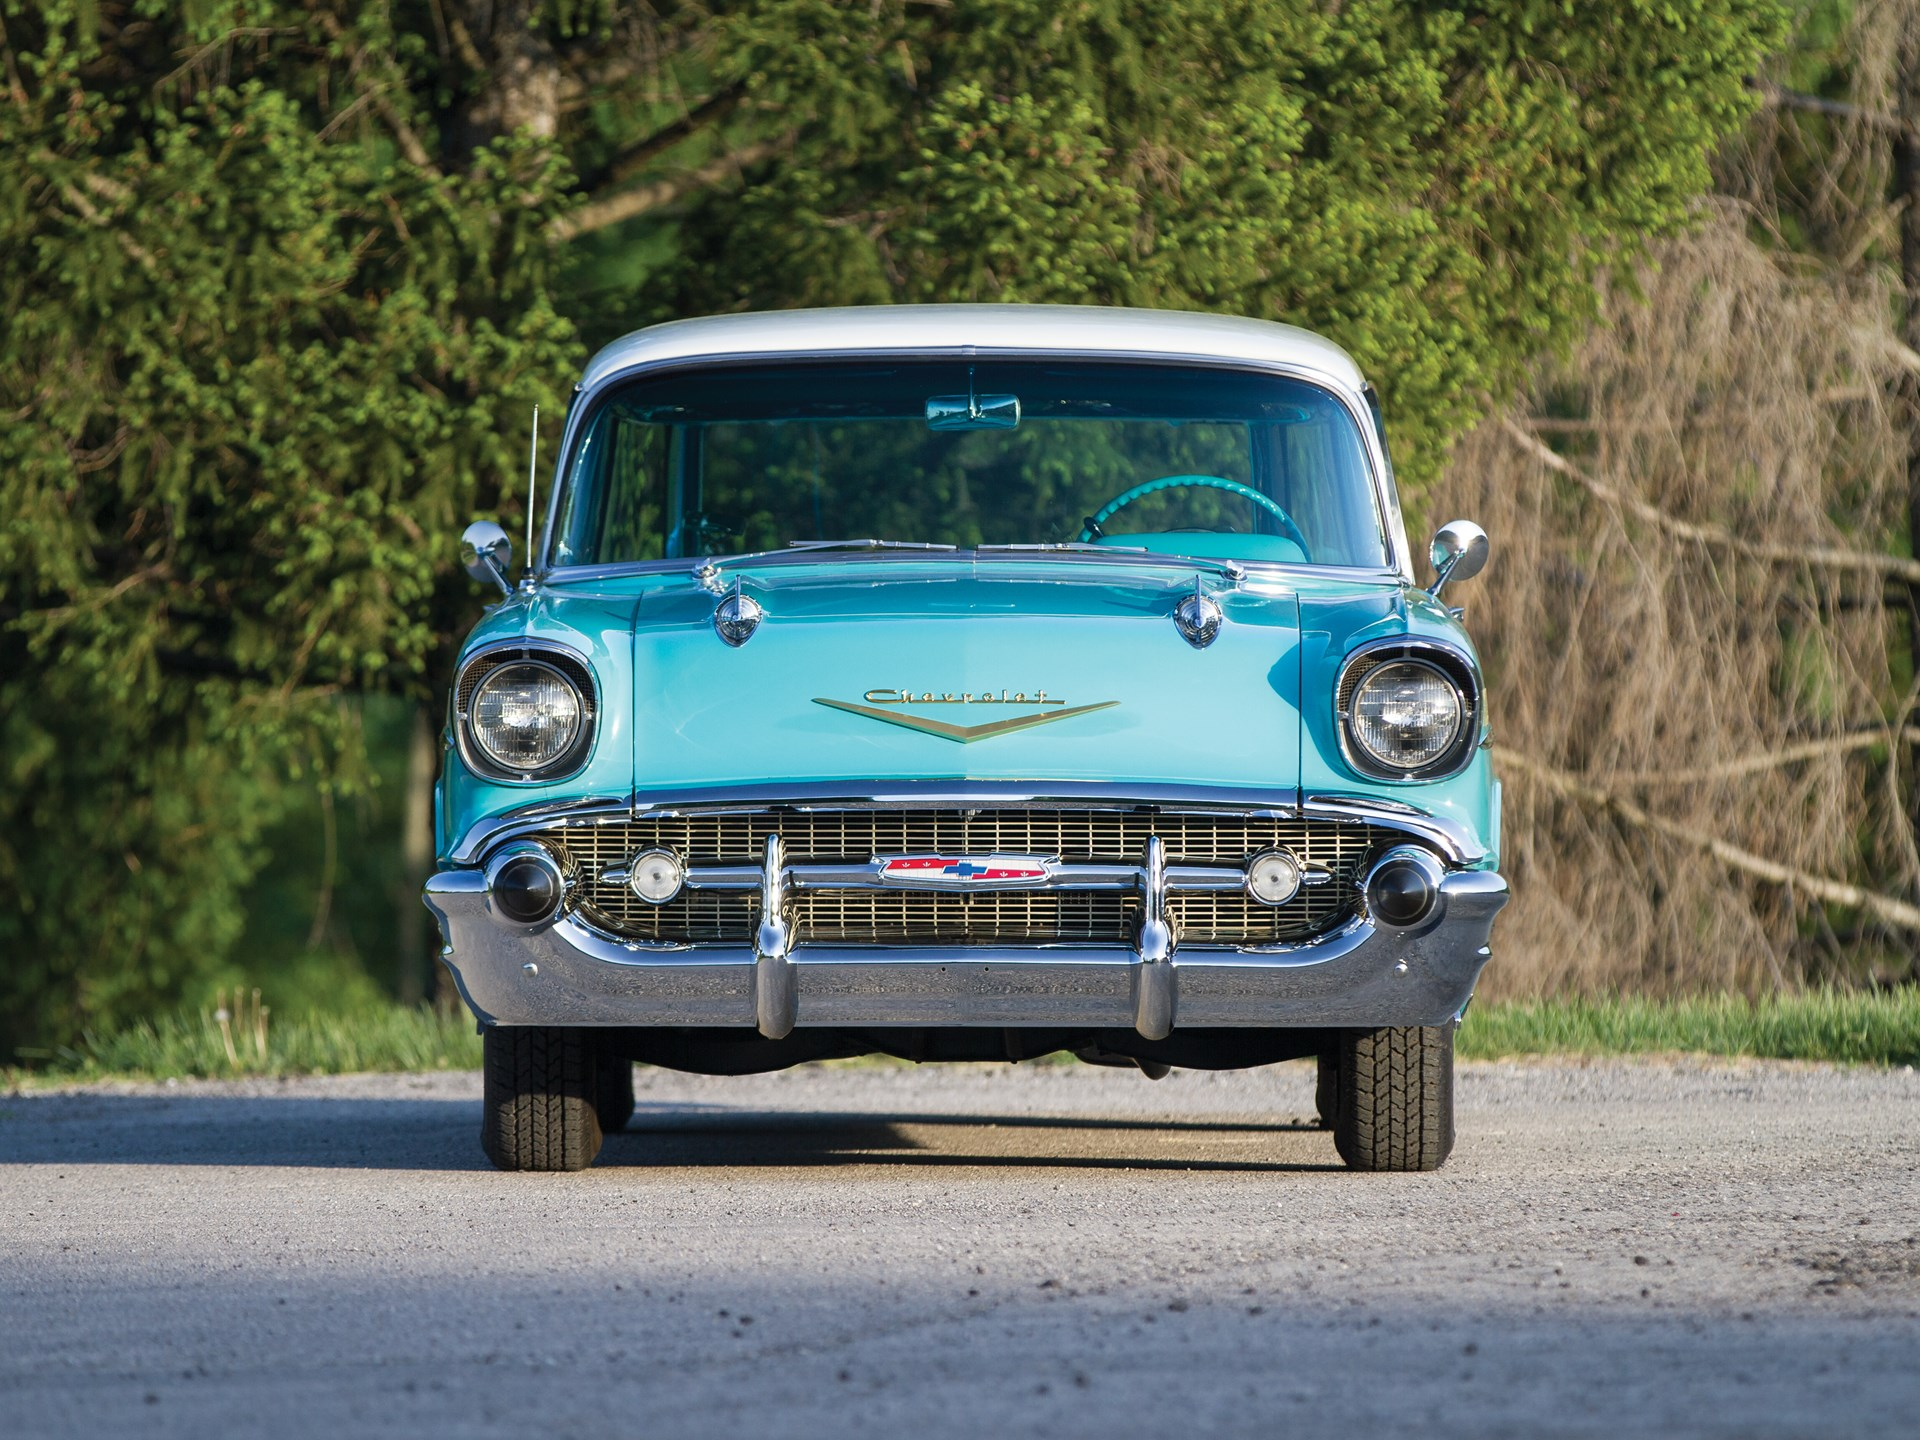 Rm Sothebys 1957 Chevrolet Bel Air Nomad Station Wagon Motor Chevy